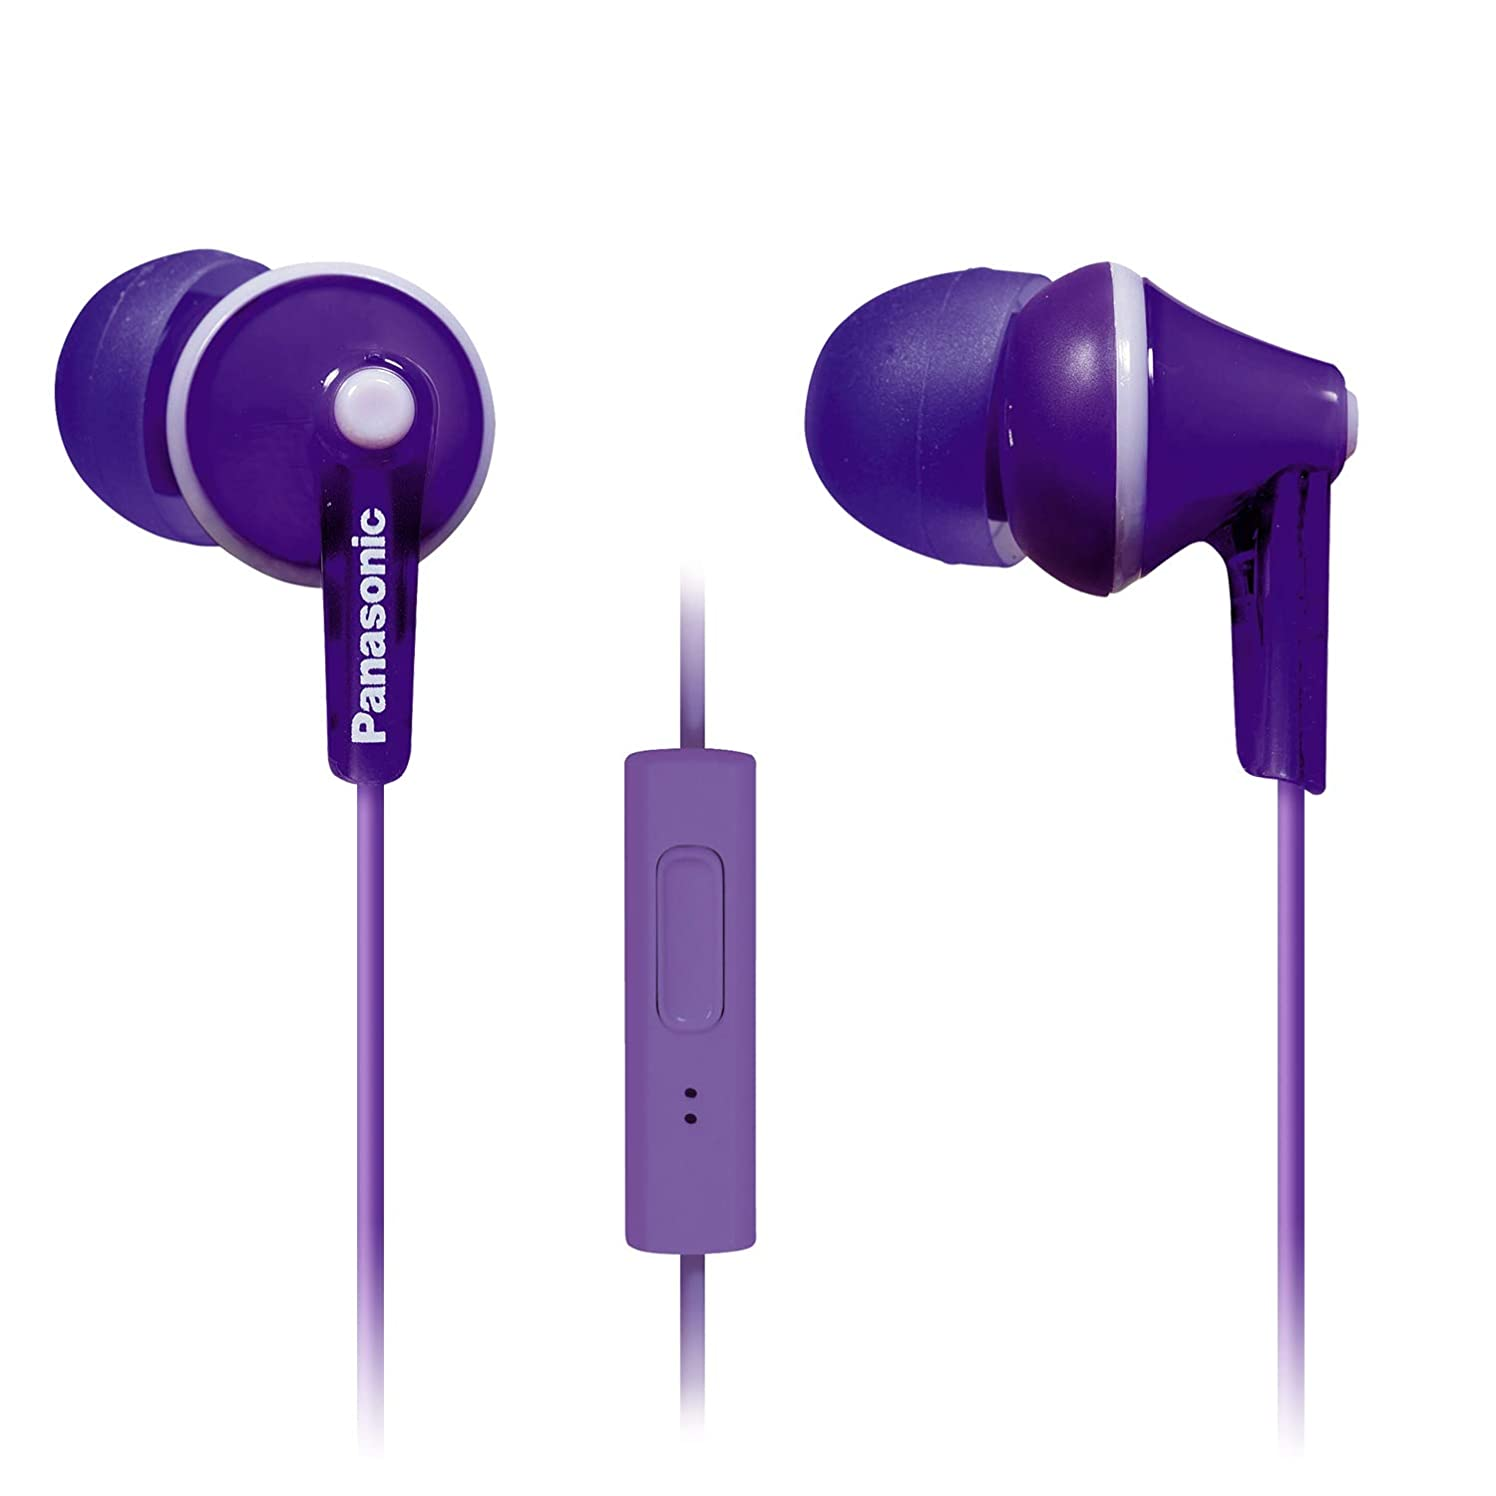 PANASONIC ErgoFit Earbud Headphones with Microphone and Call Controller Compatible with iPhone, Android and Blackberry - RP-TCM125-V - In-Ear (Purple)